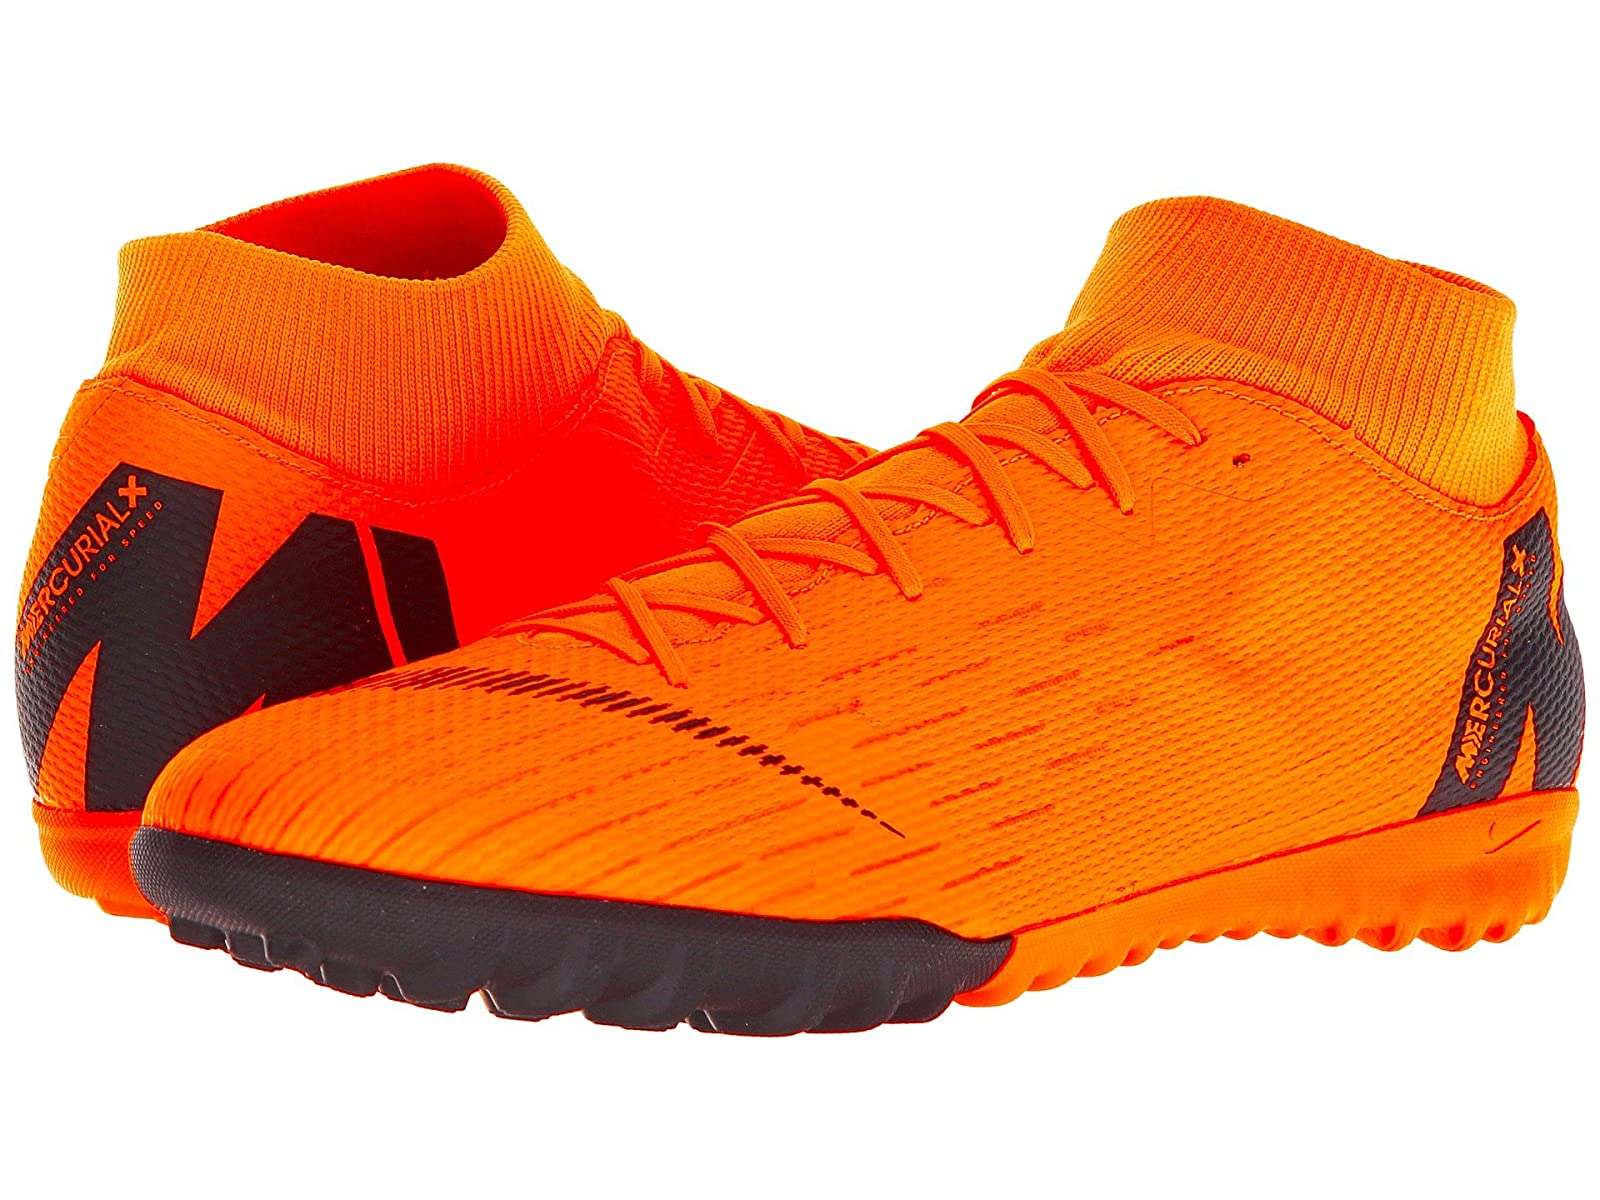 Nike SuperflyX 6 Academy TFCheap and distinctive eye-catching shoes